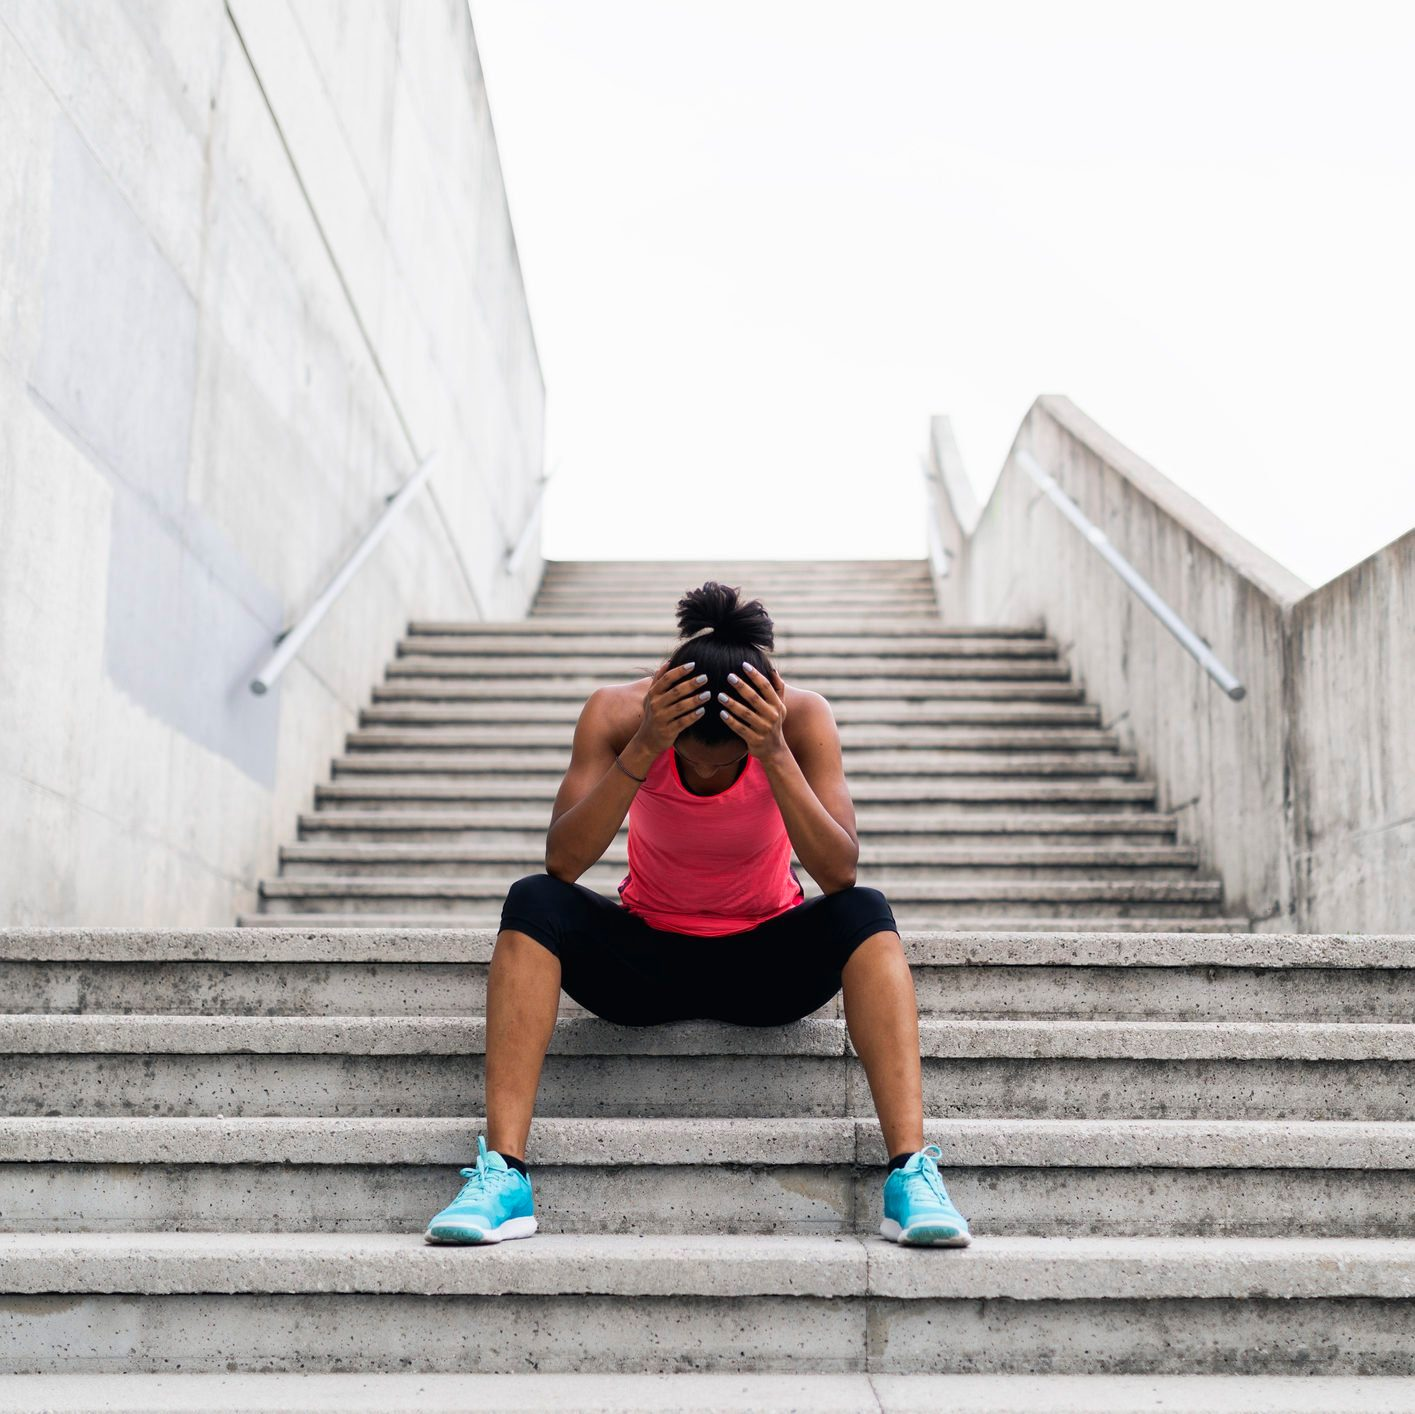 young woman sitting on stairs taking a break from workout